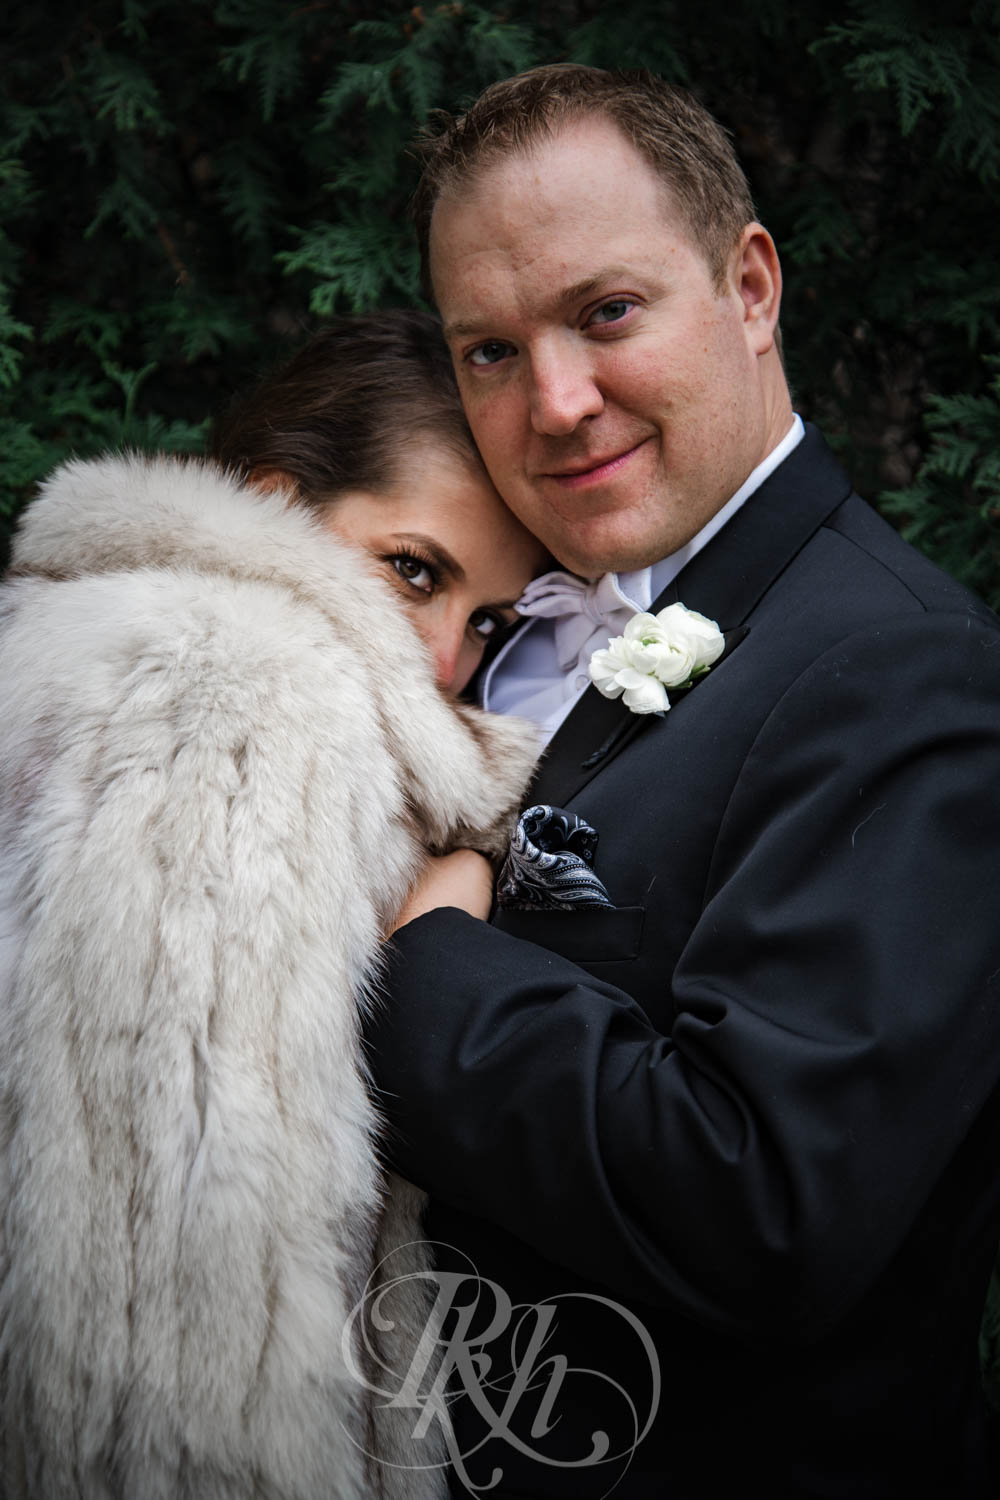 Jackie & Brett - Minnesota Wedding Photography -  St. Paul Hotel - RKH Images - Blog (15 of 48).jpg